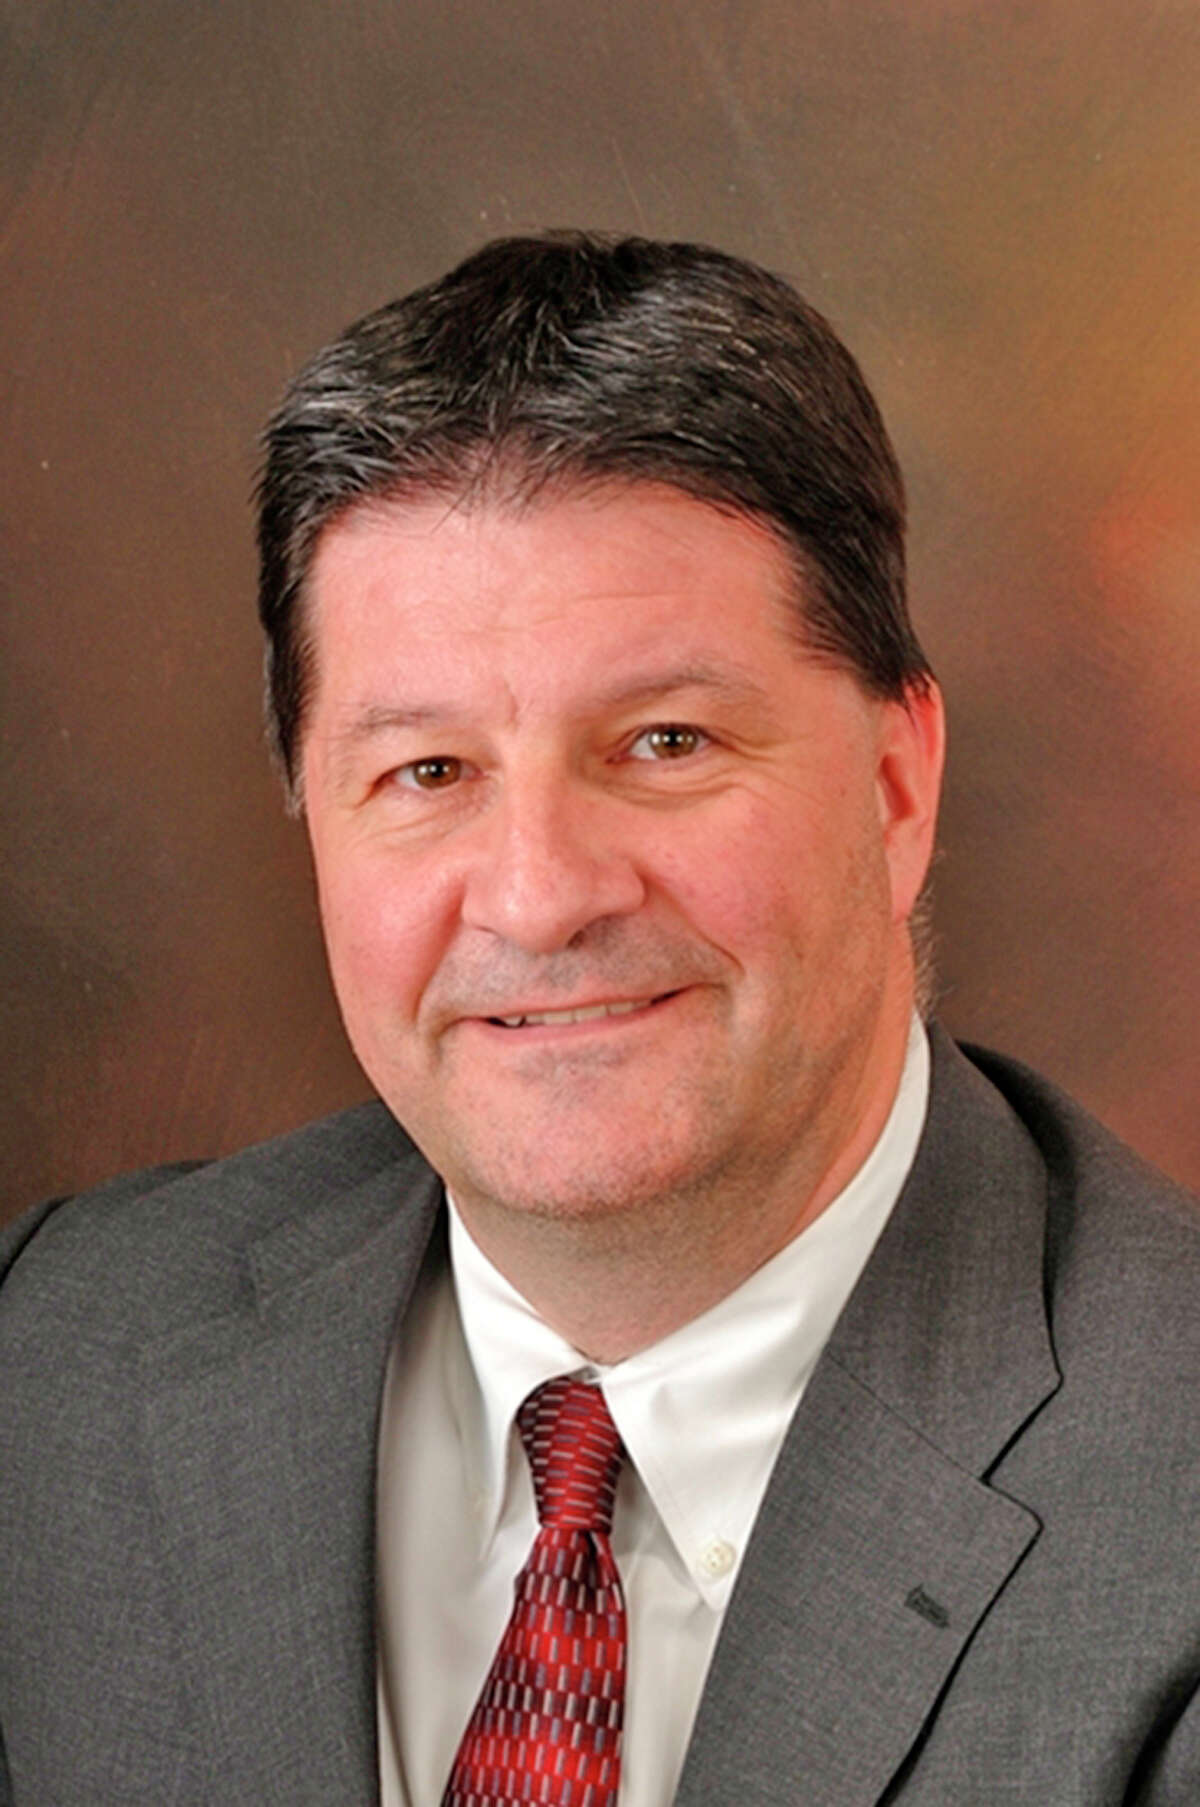 Urs Rathgeb has joinedHouston-based R. G. Miller Engineersas chief financial officer.